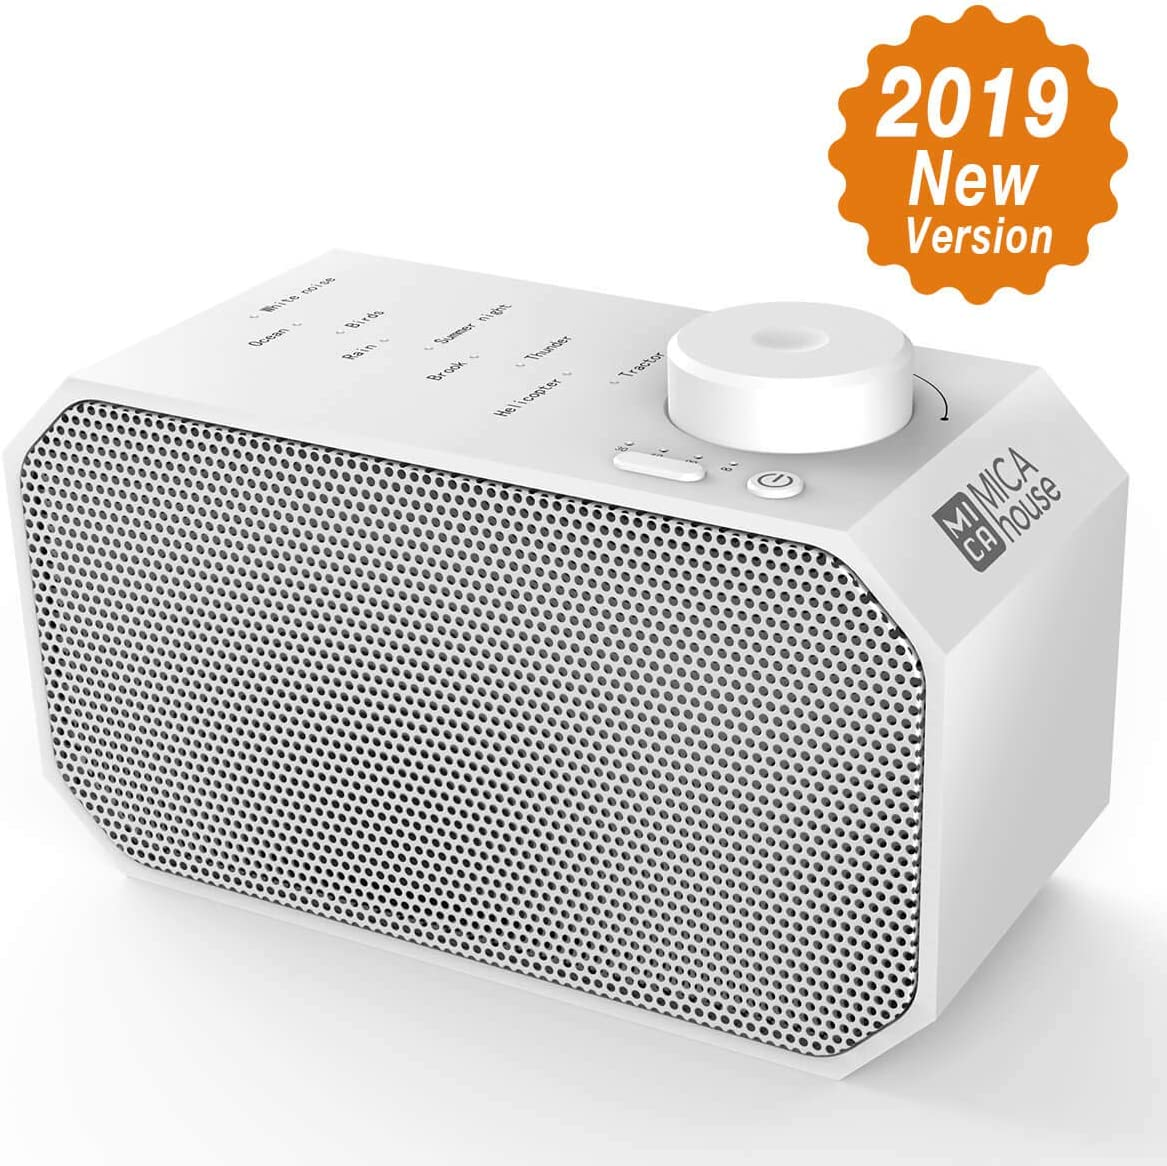 White Noise Machine, Mica House Sound Relaxation Machine with 4 Timers 9 Natural Sounds Portable Sound Therapy for Home, Office and Travel